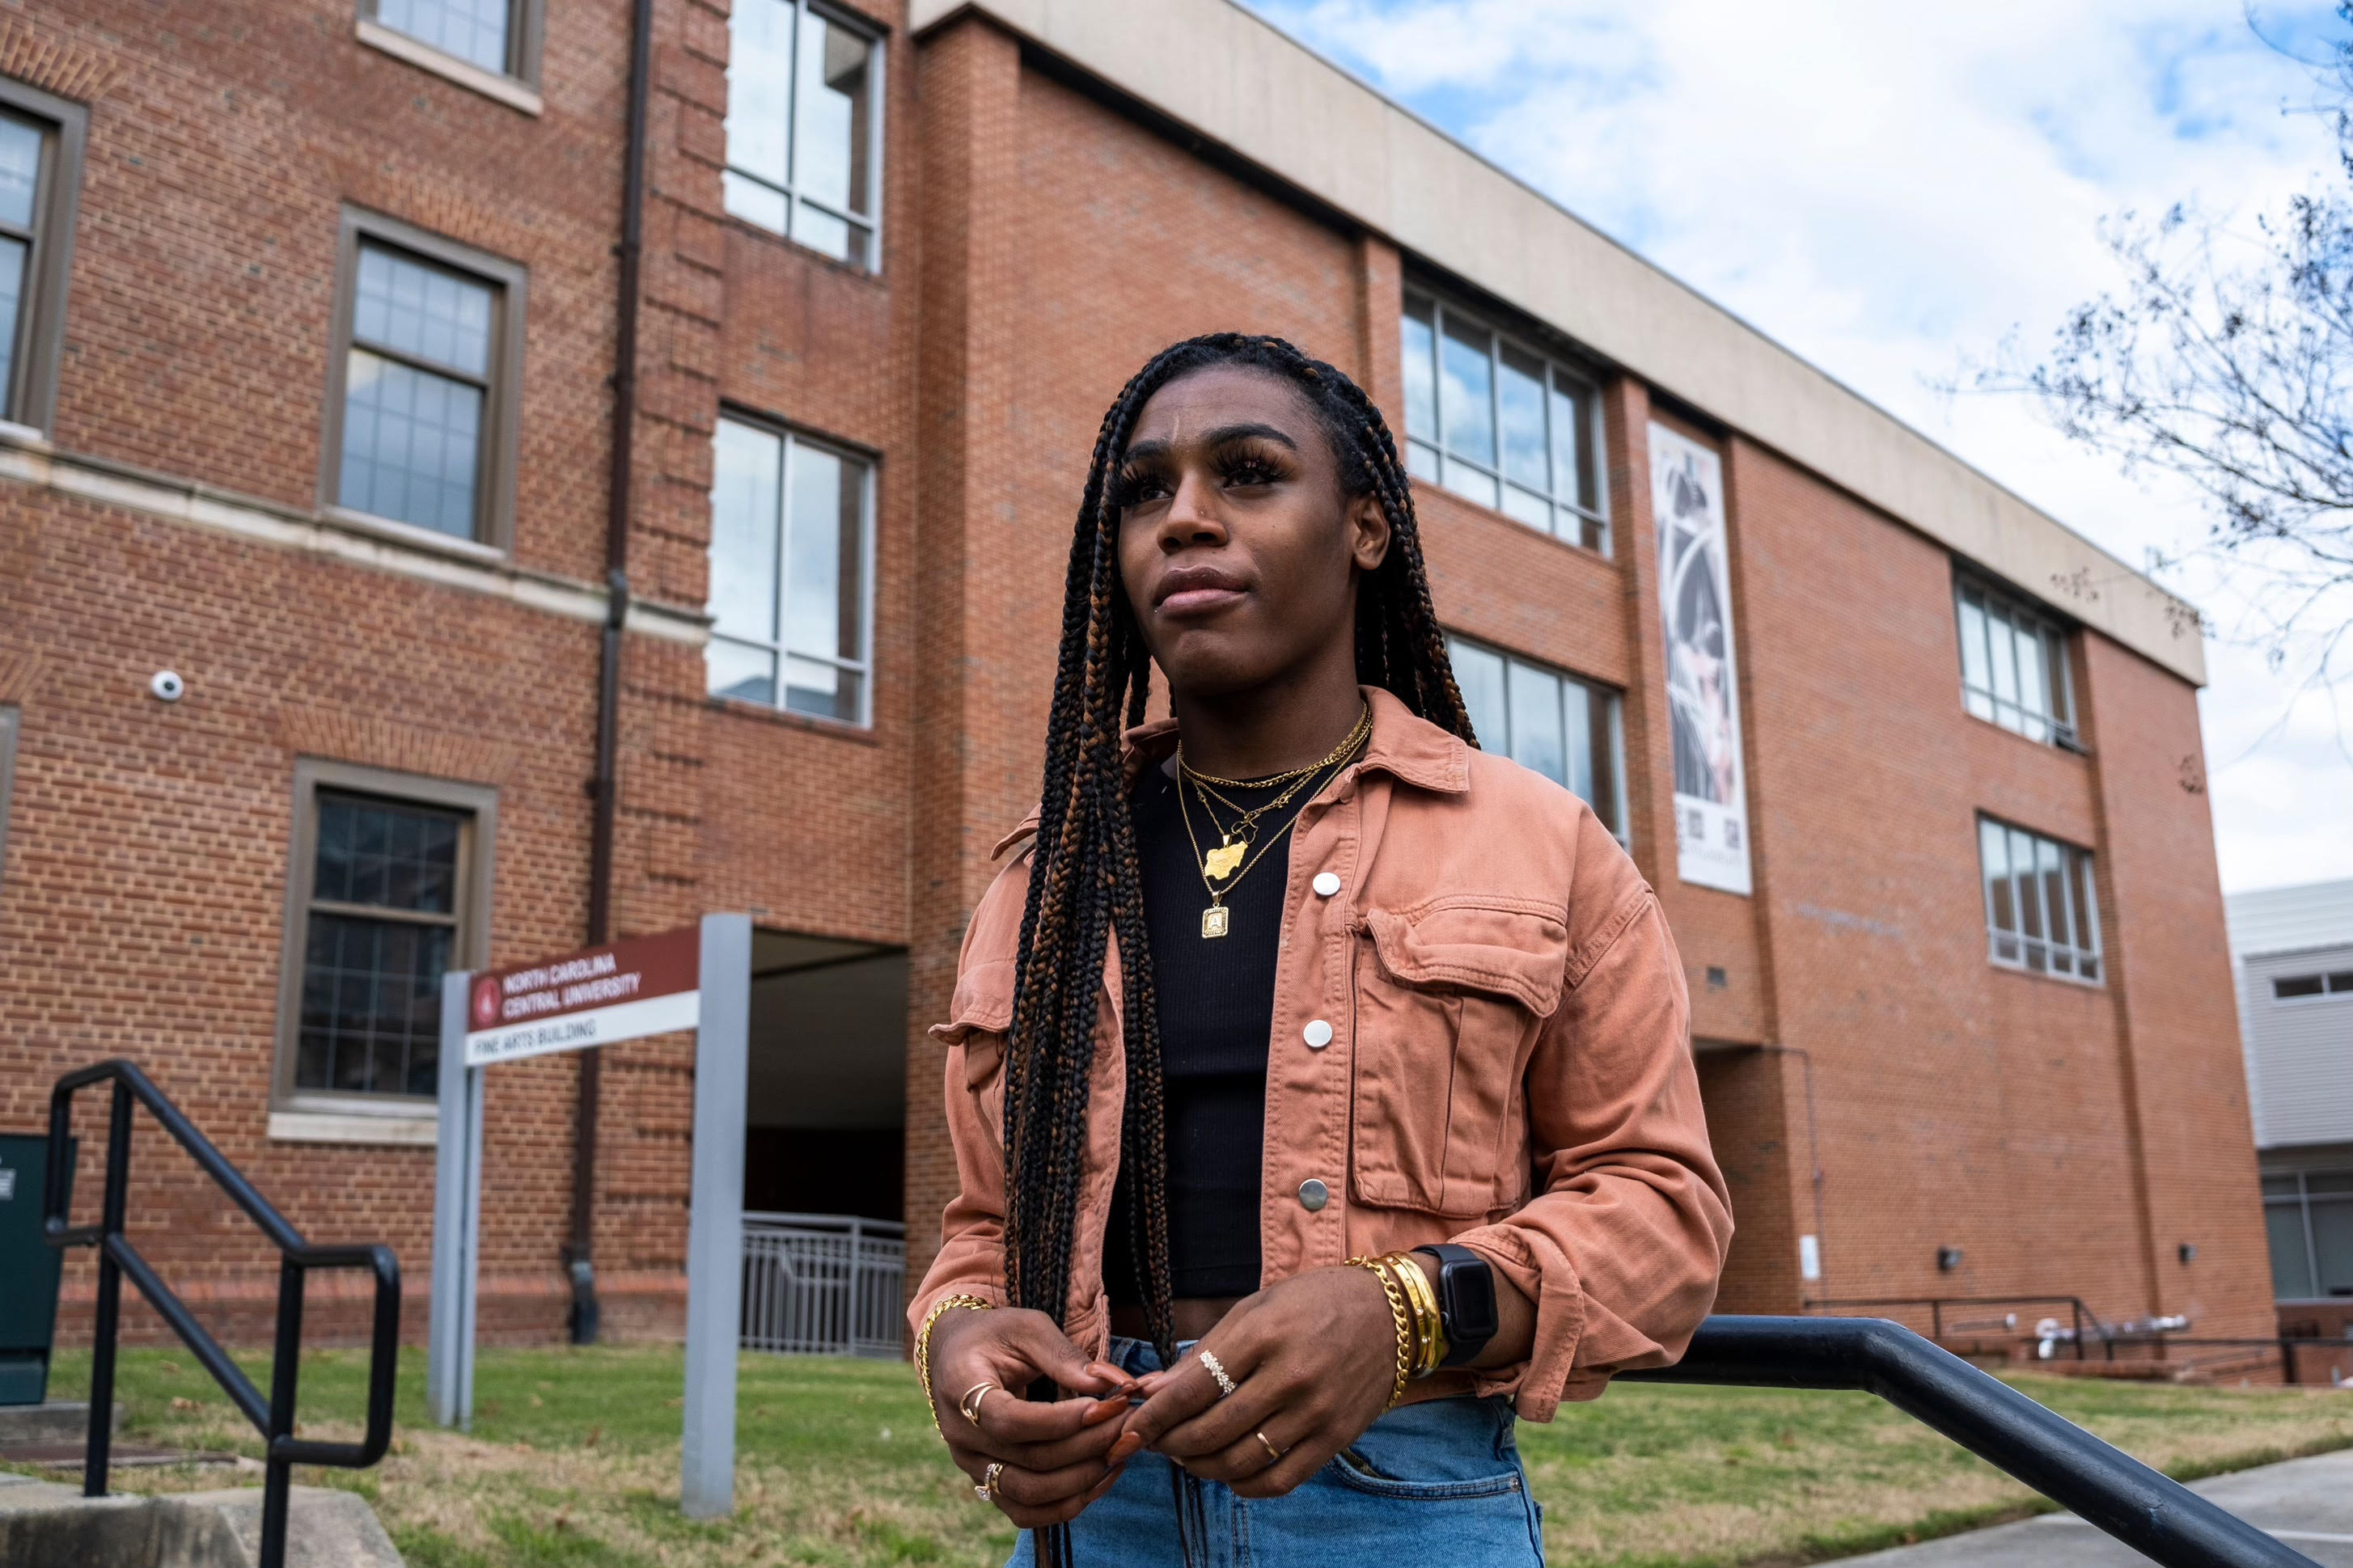 Andraya Yearwood, one of the three trans student athletes featured in Hulu's new documentary Changing The Game